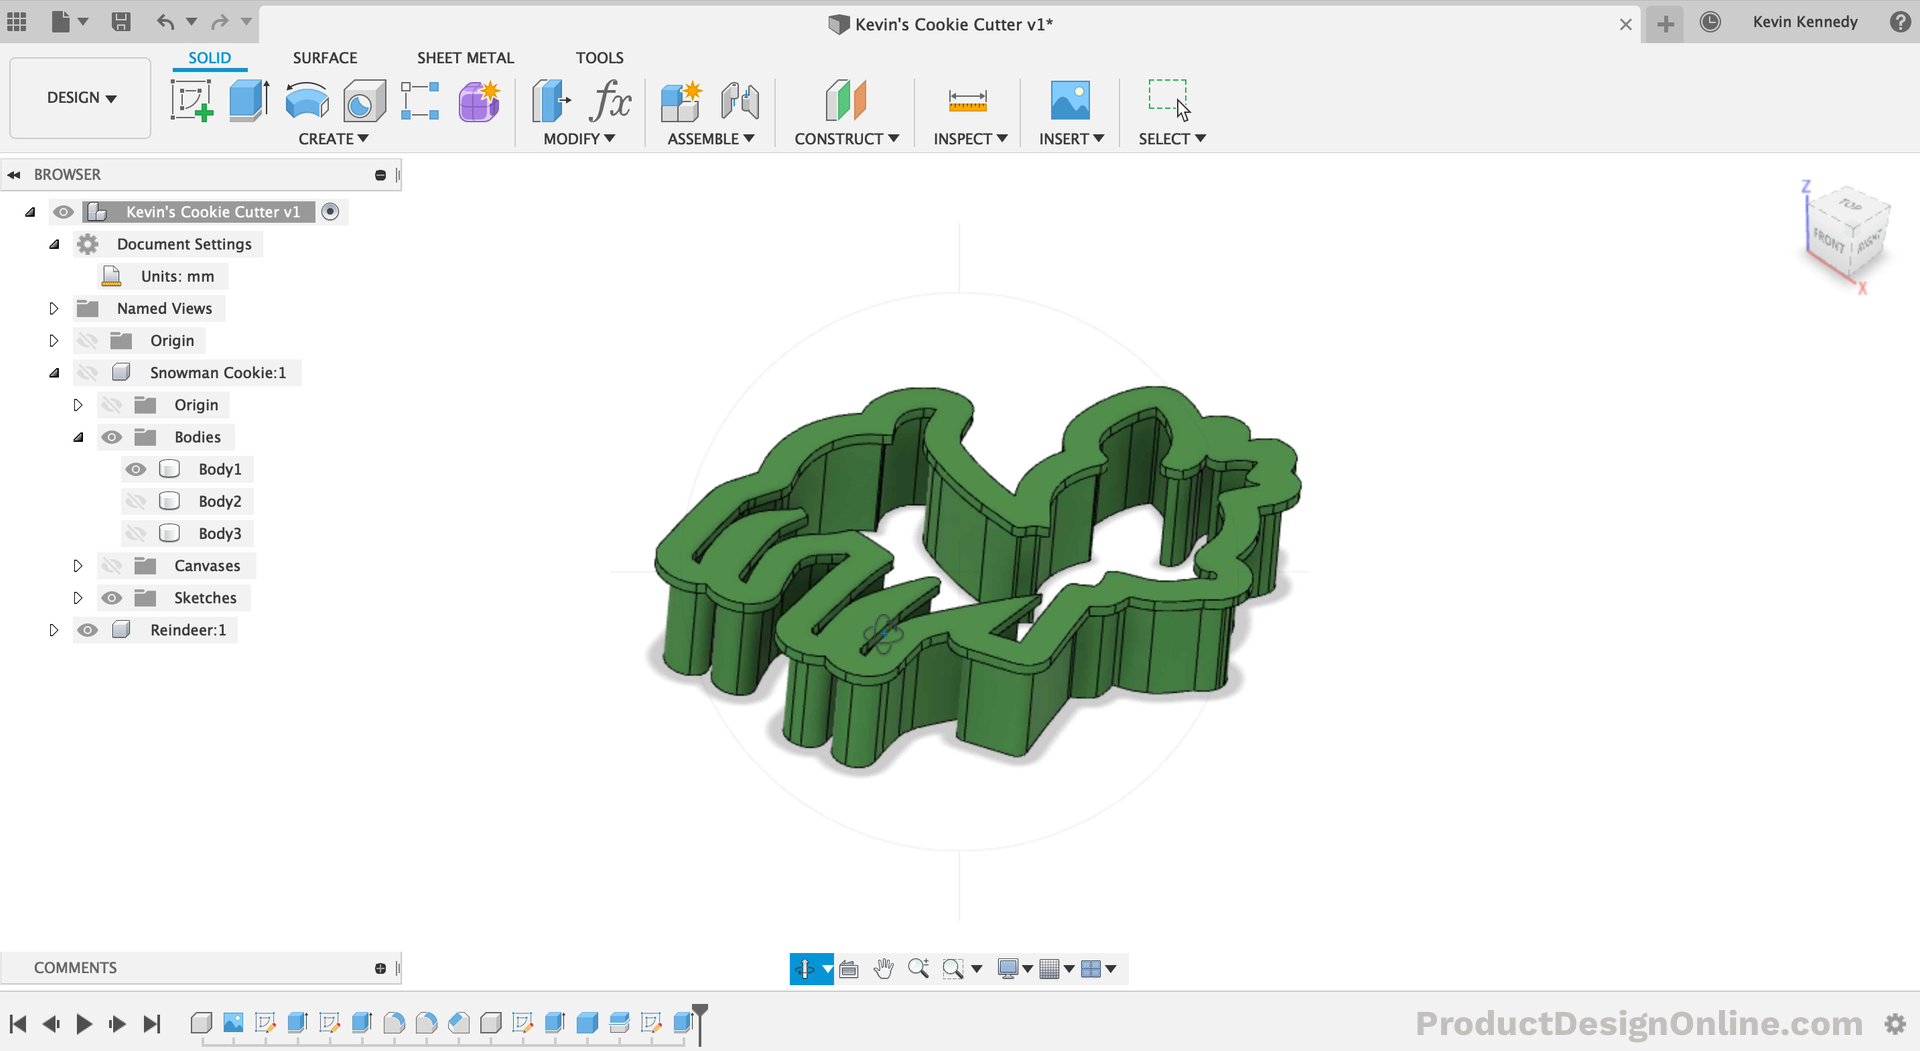 Design 3D Printable Cookie Cutters in Fusion 360